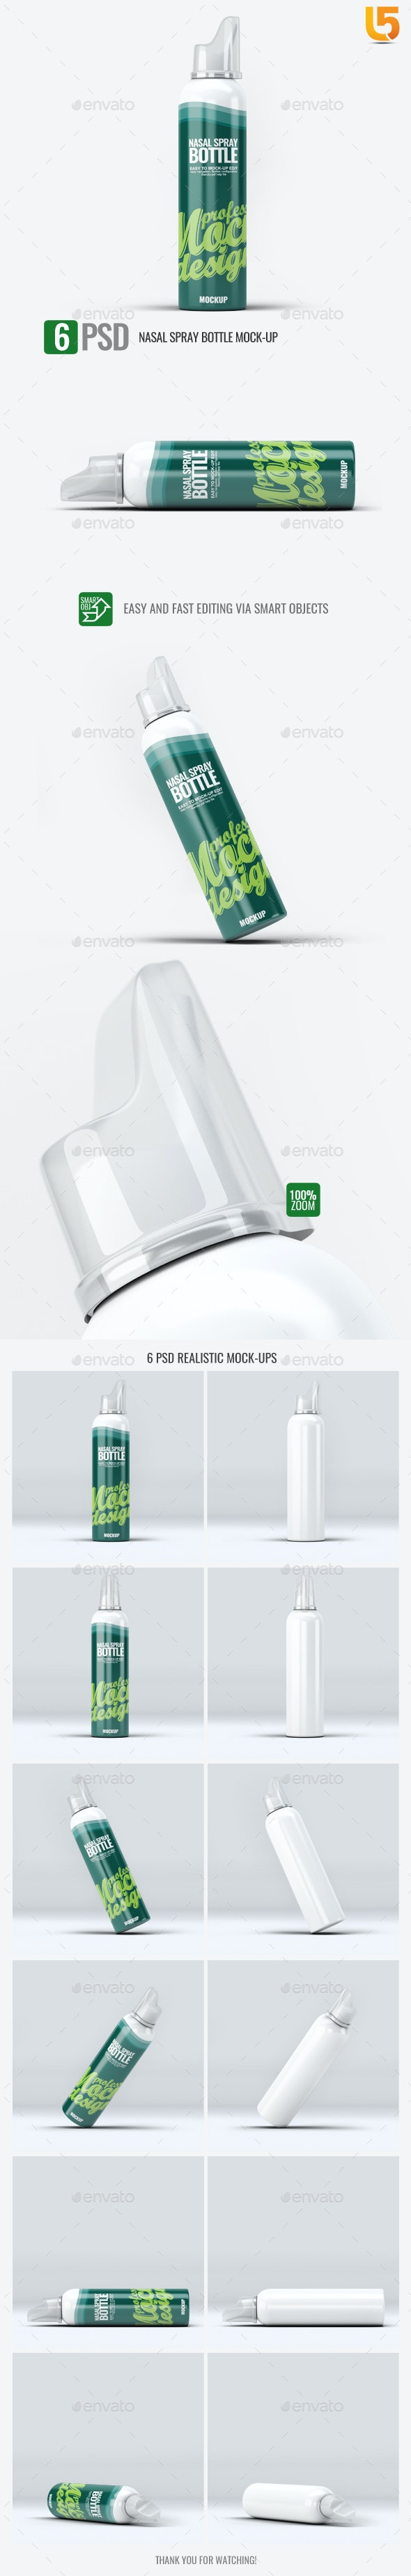 Nasal Spray Bottle Mock-Up - Miscellaneous Packaging